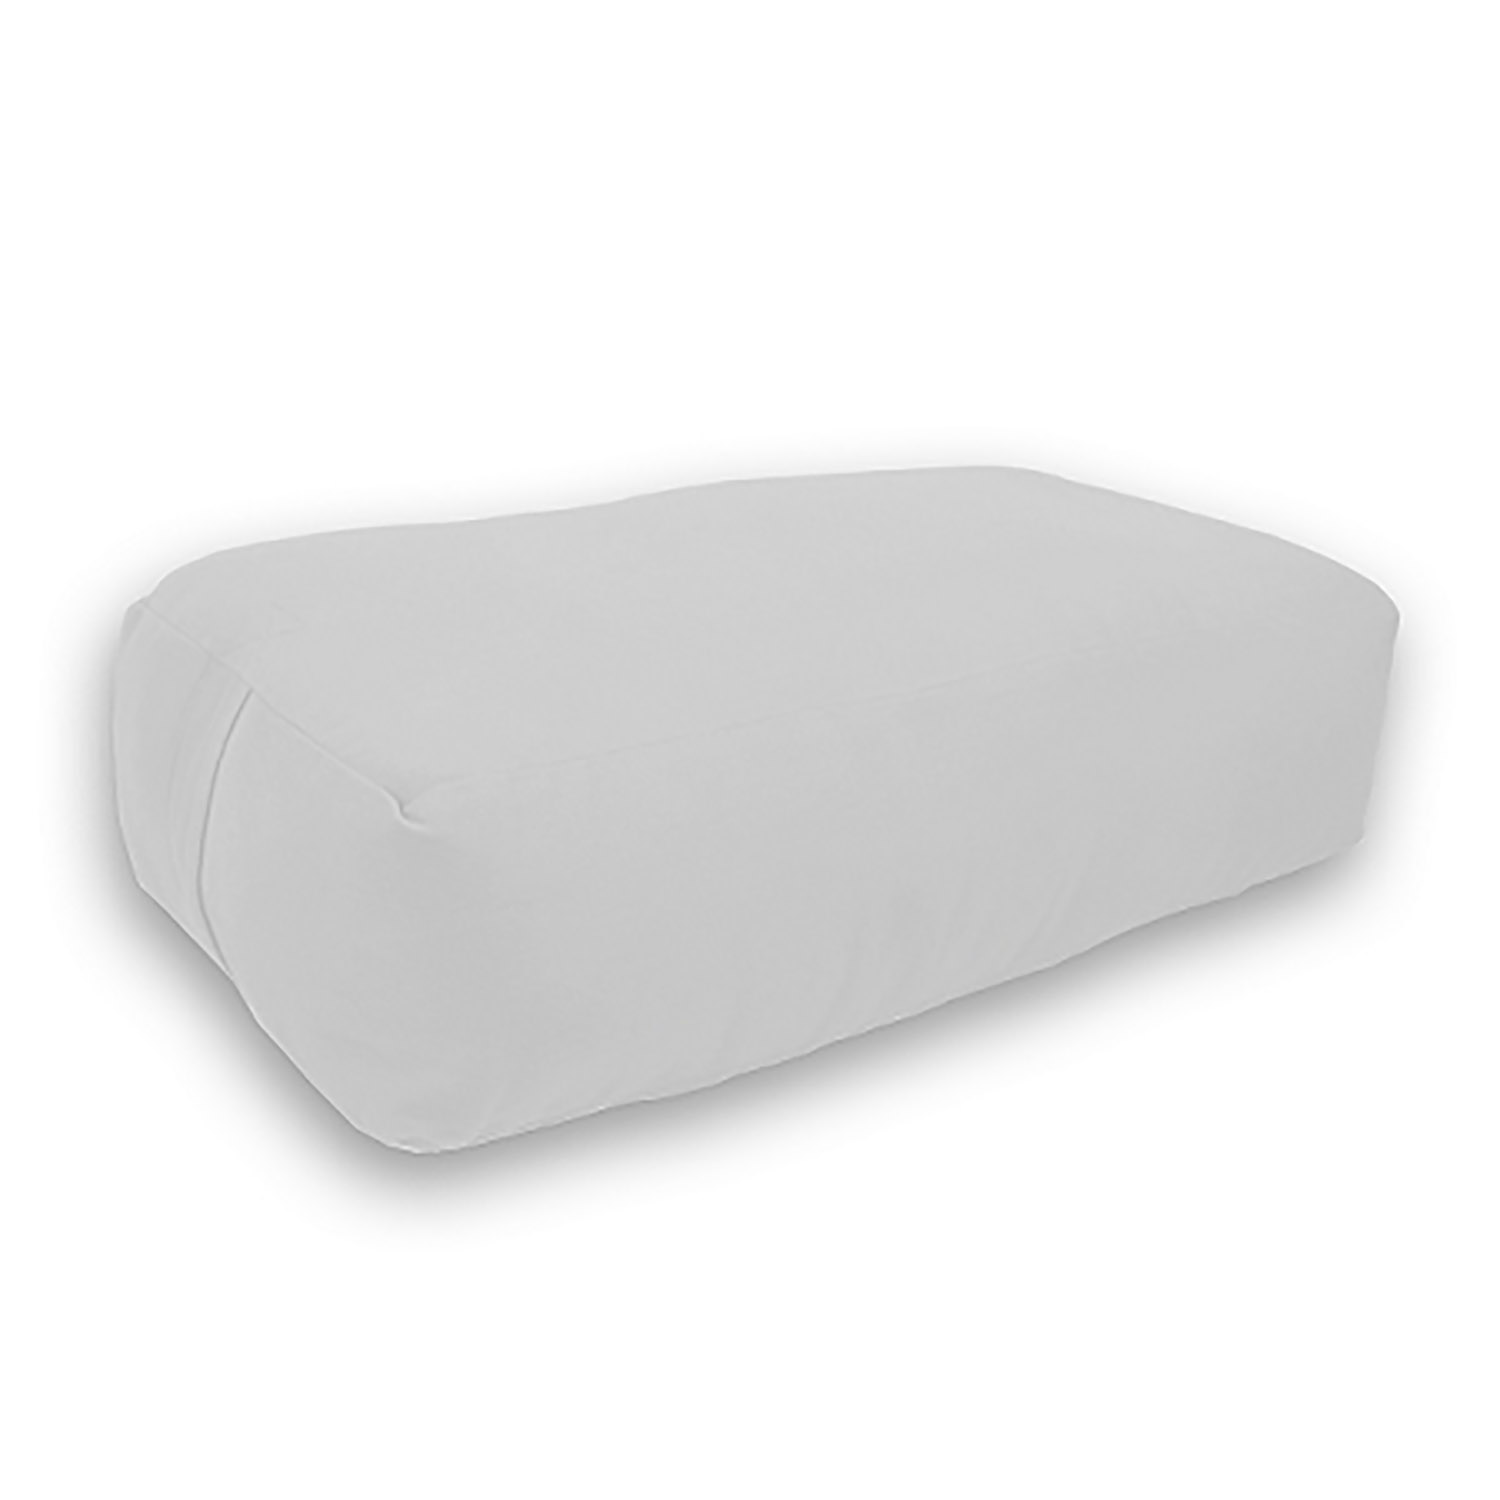 a made pin pillows hide yoga storage bolster canvas blankets pillow covers hacks on and boat of